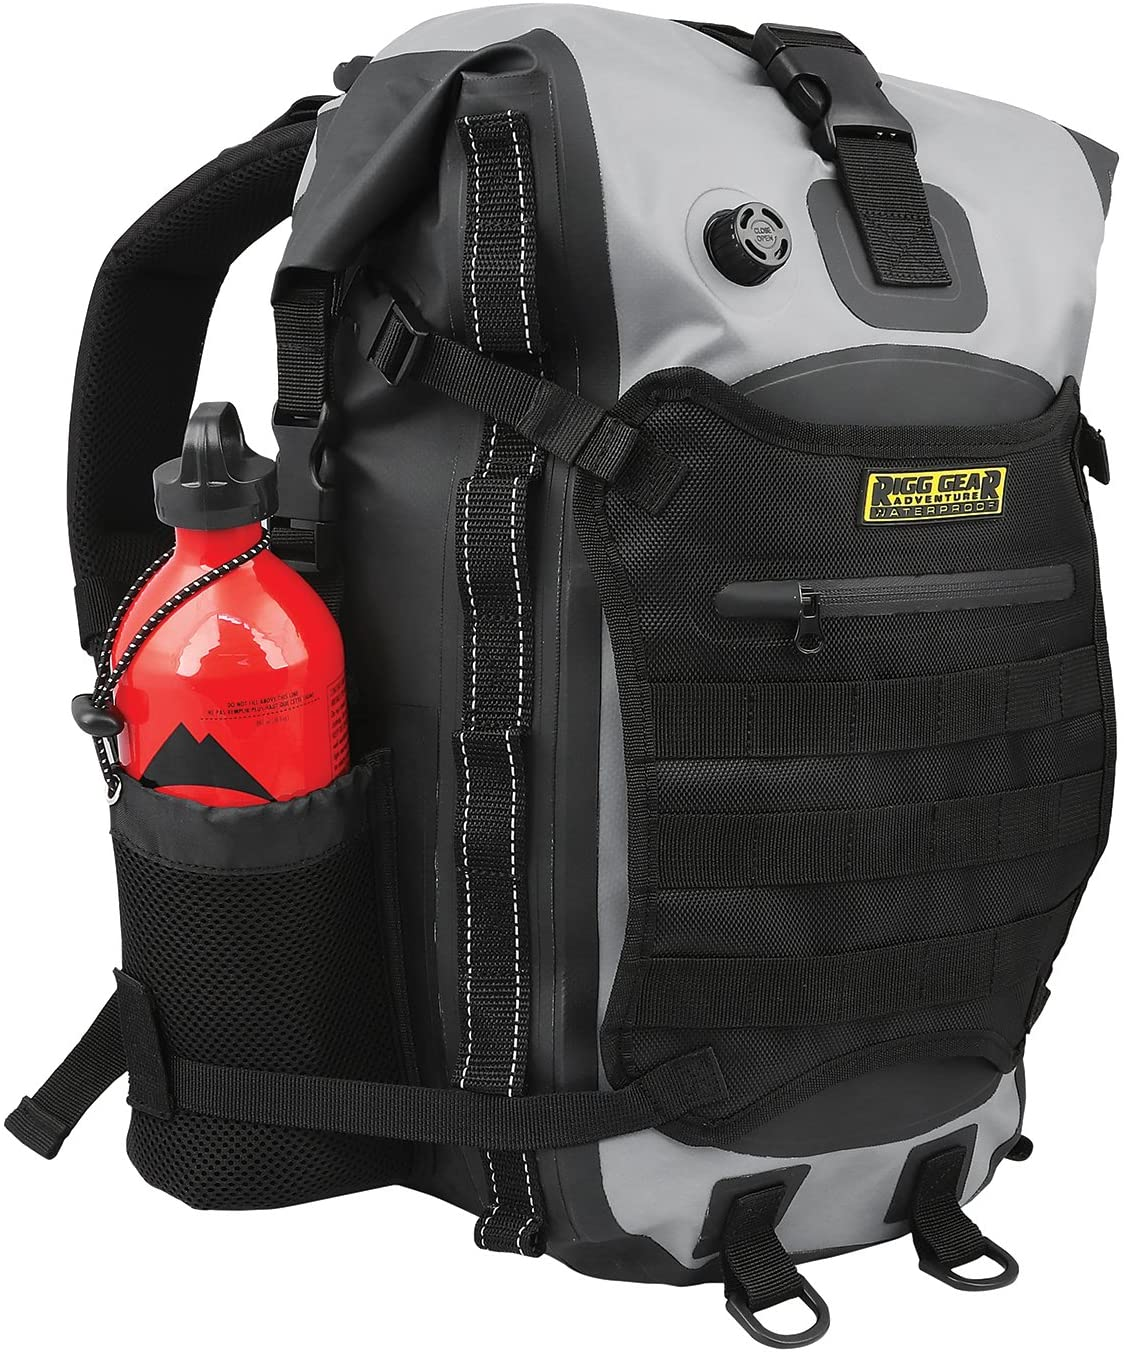 Miami Mall Nelson-Rigg SE-3020 Rigg Gear Popular overseas Hurricane 20L Waterproof Backpack